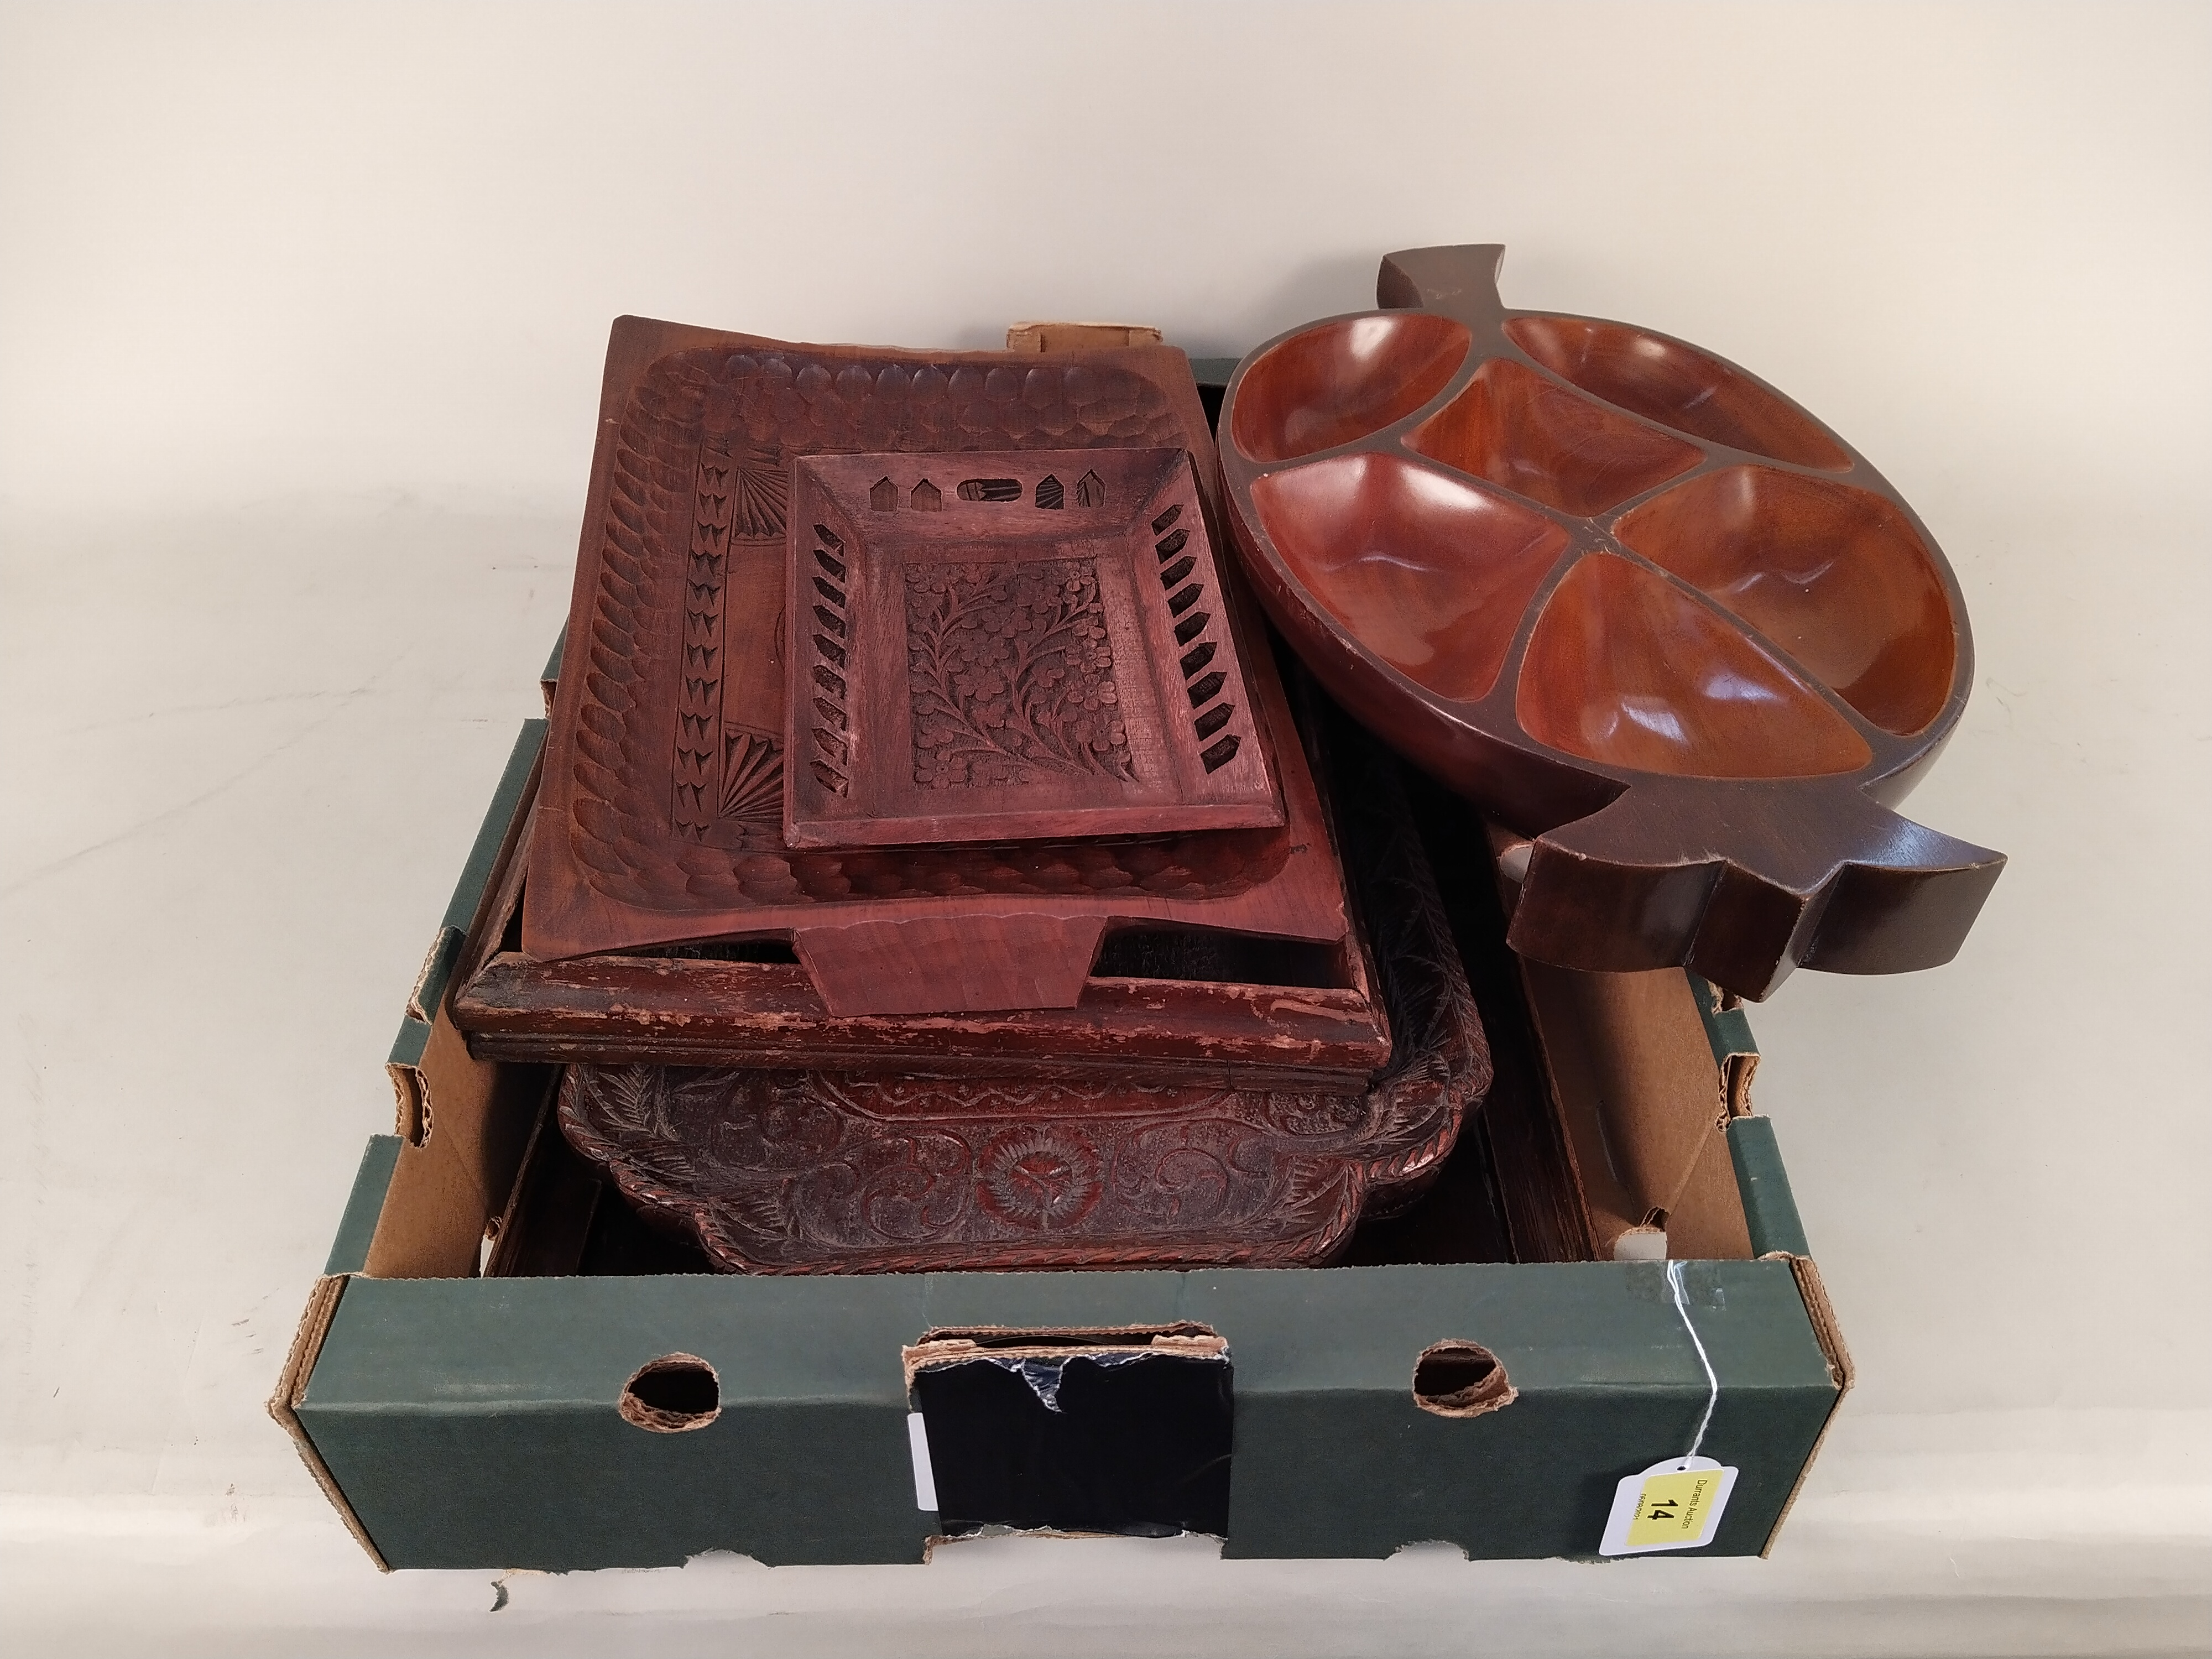 A selection of vintage carved wooden trays including a Trinidad nut tray - Image 3 of 3